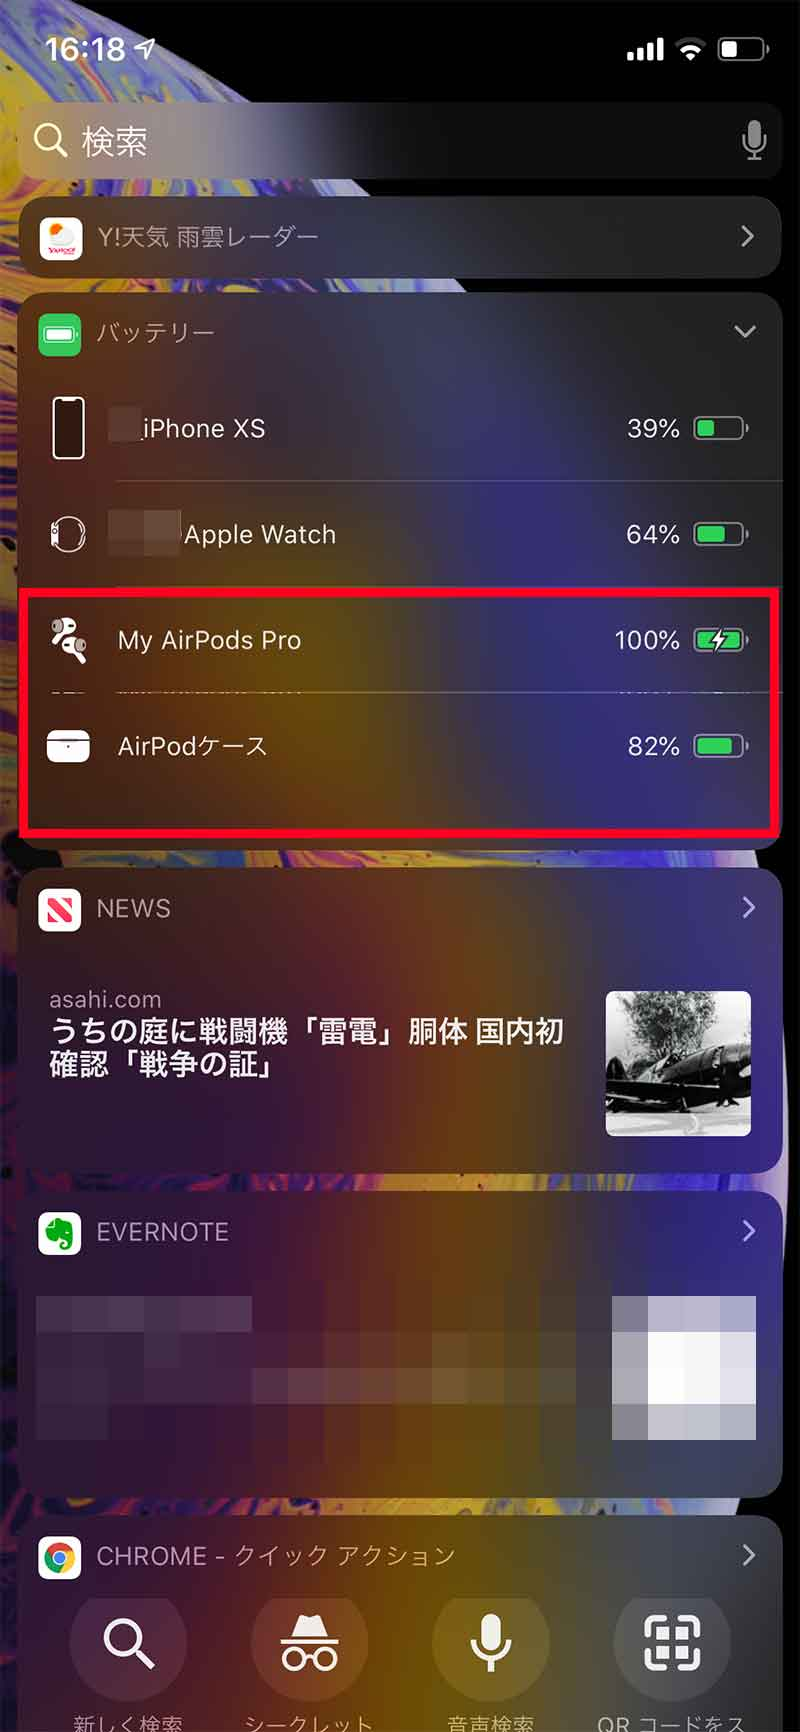 AirPods Proとケースのバッテリー残量